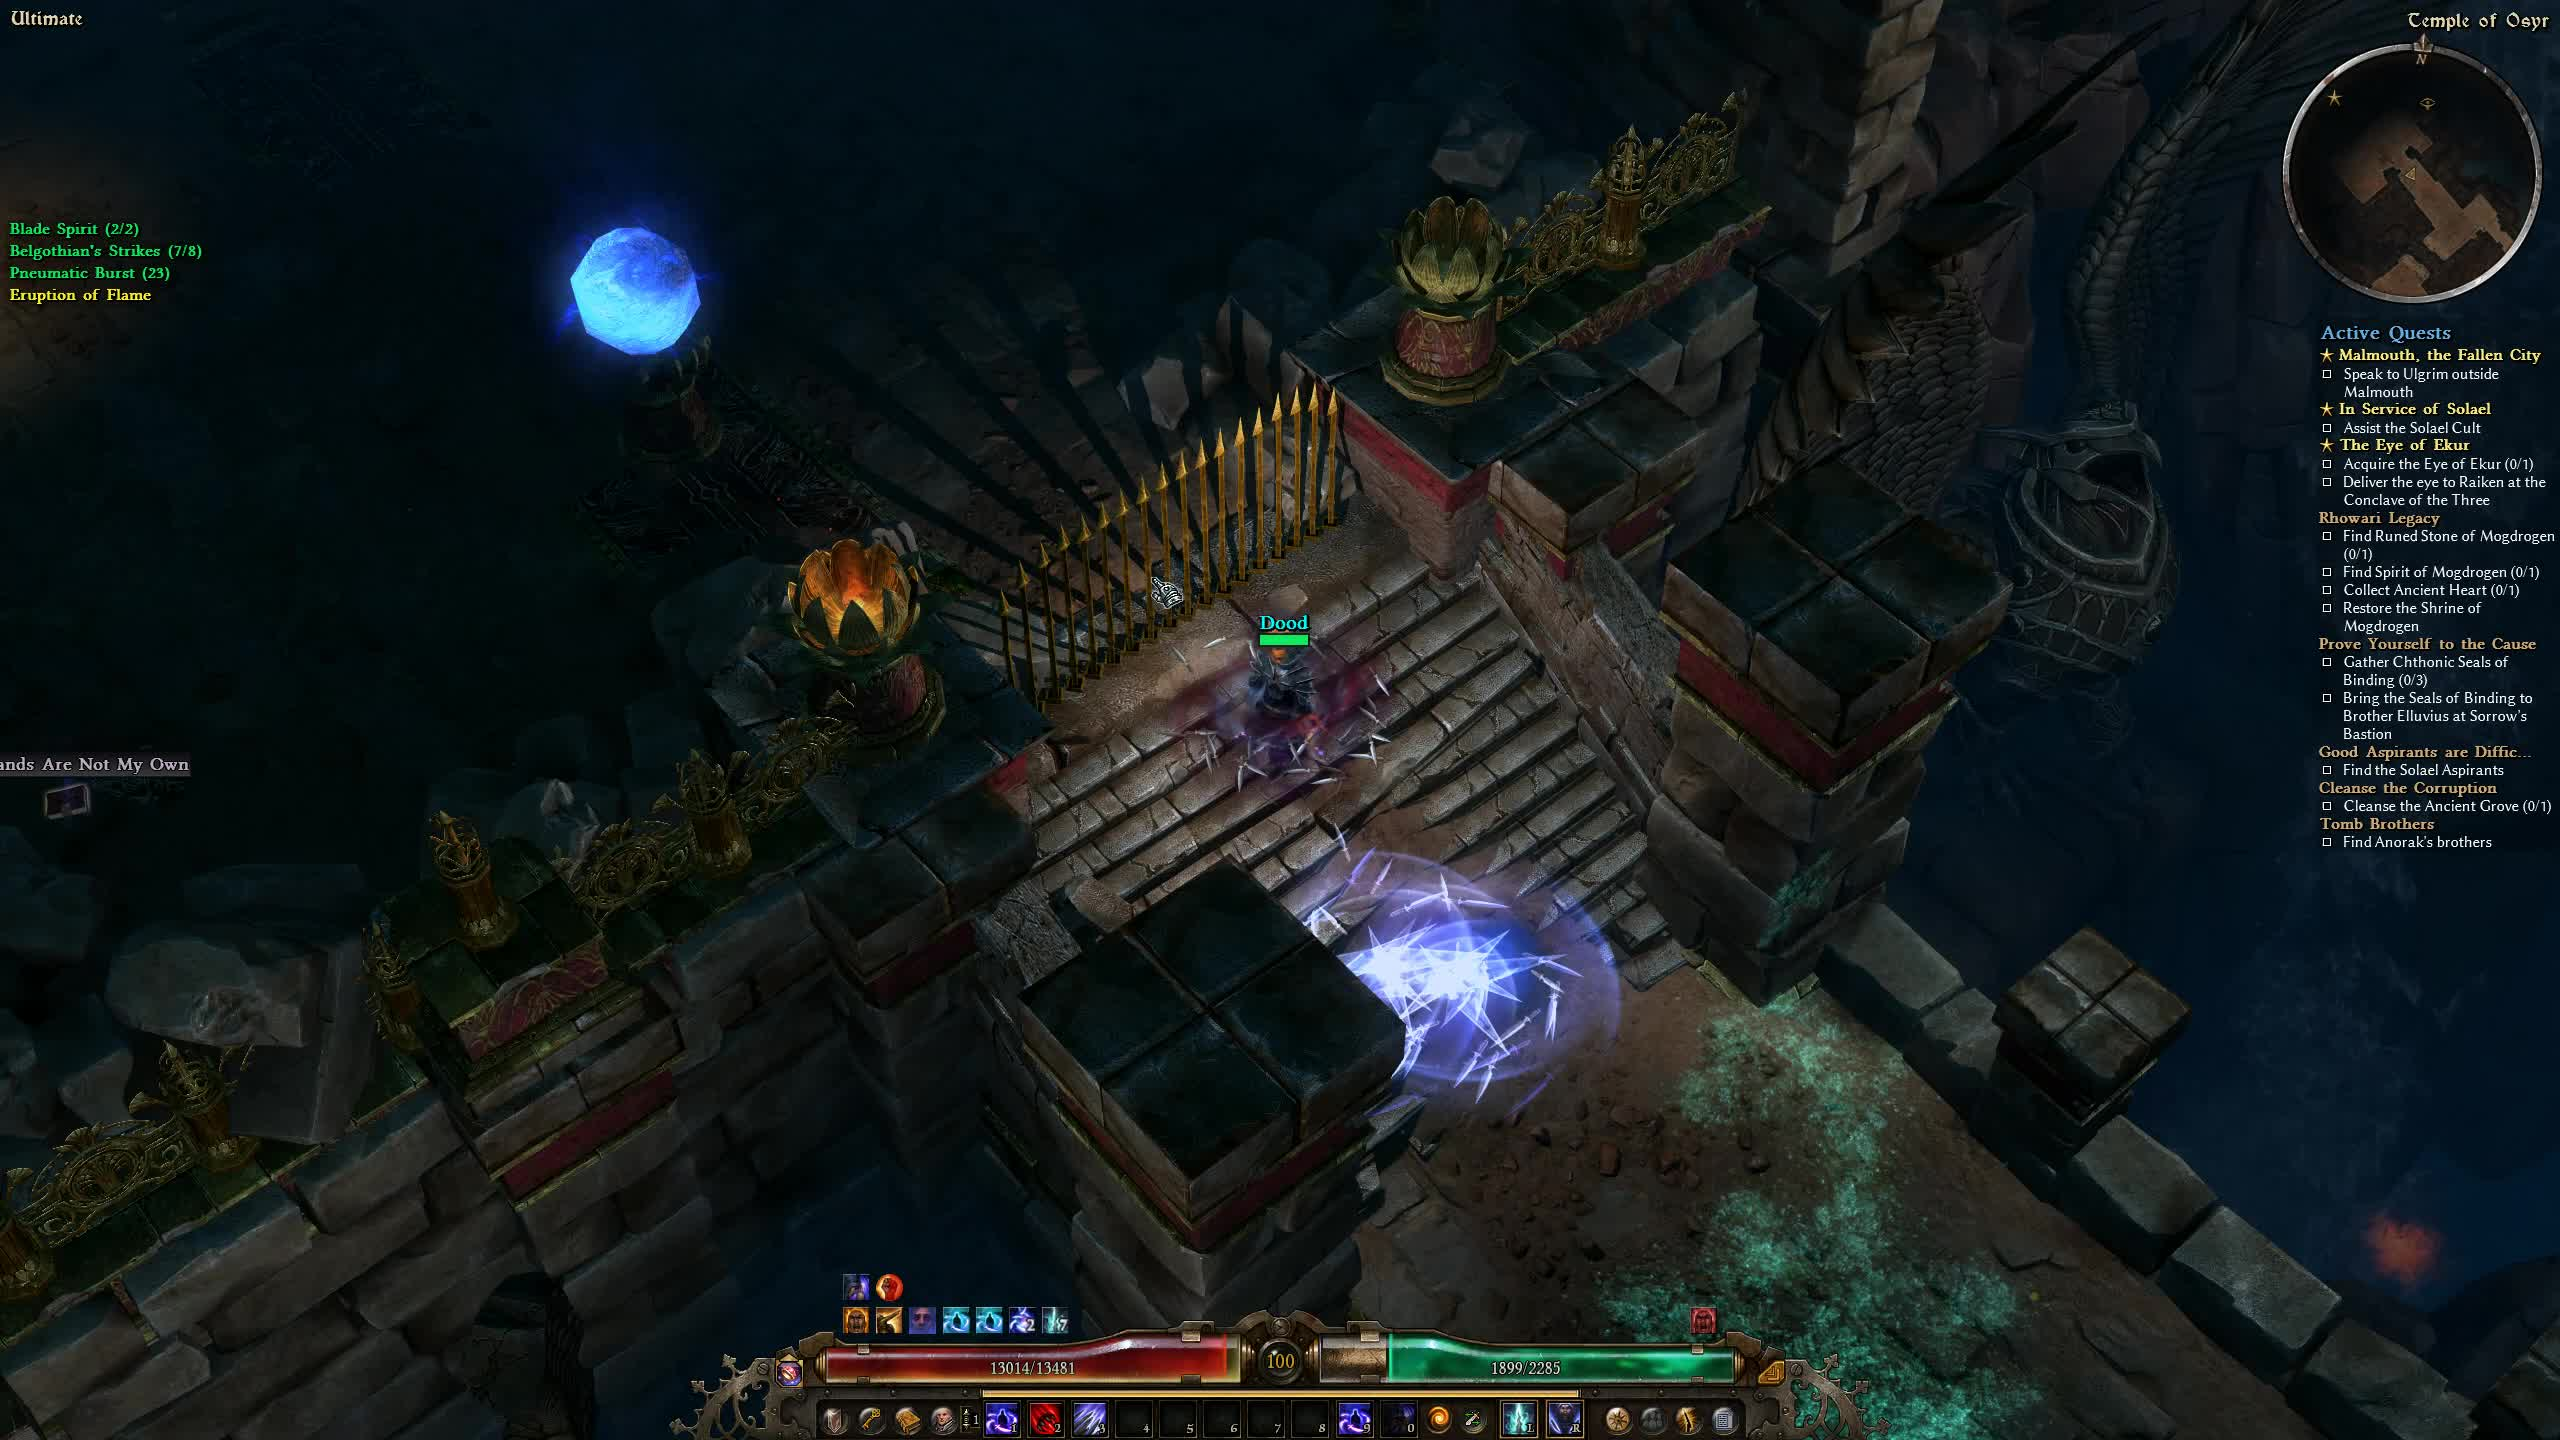 Grim Dawn Gifs Search | Search & Share on Homdor